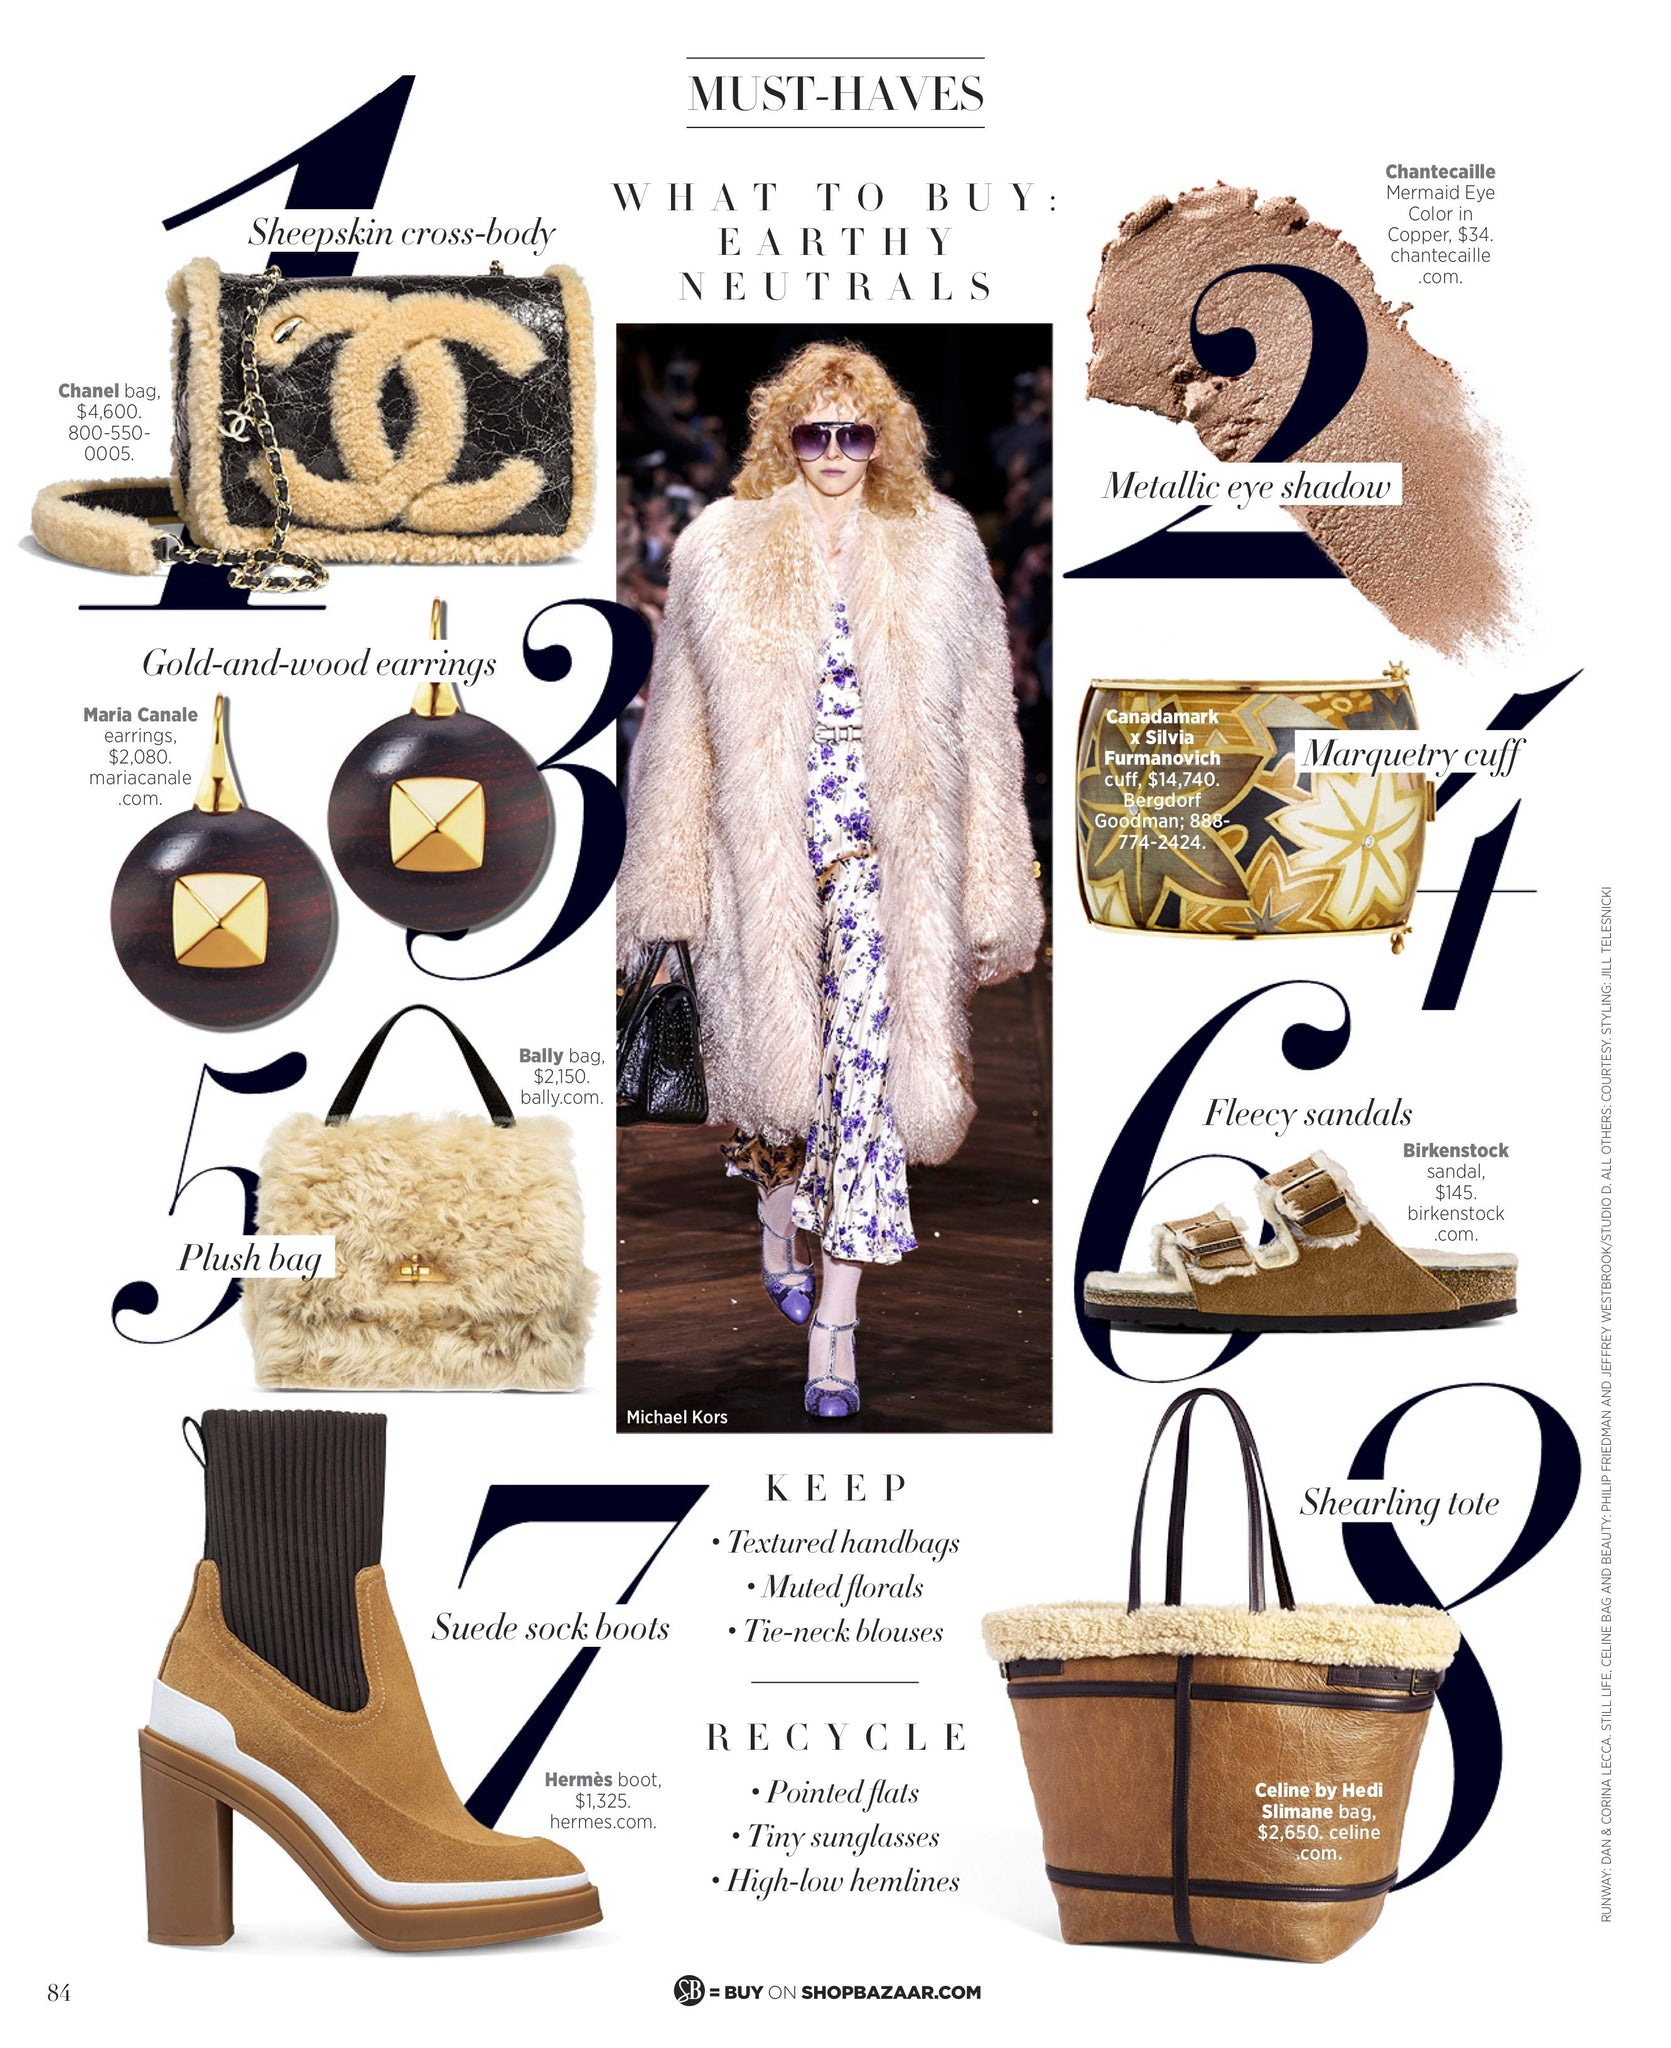 Harpers Bazaar Features Maria Canale Voyager Collection